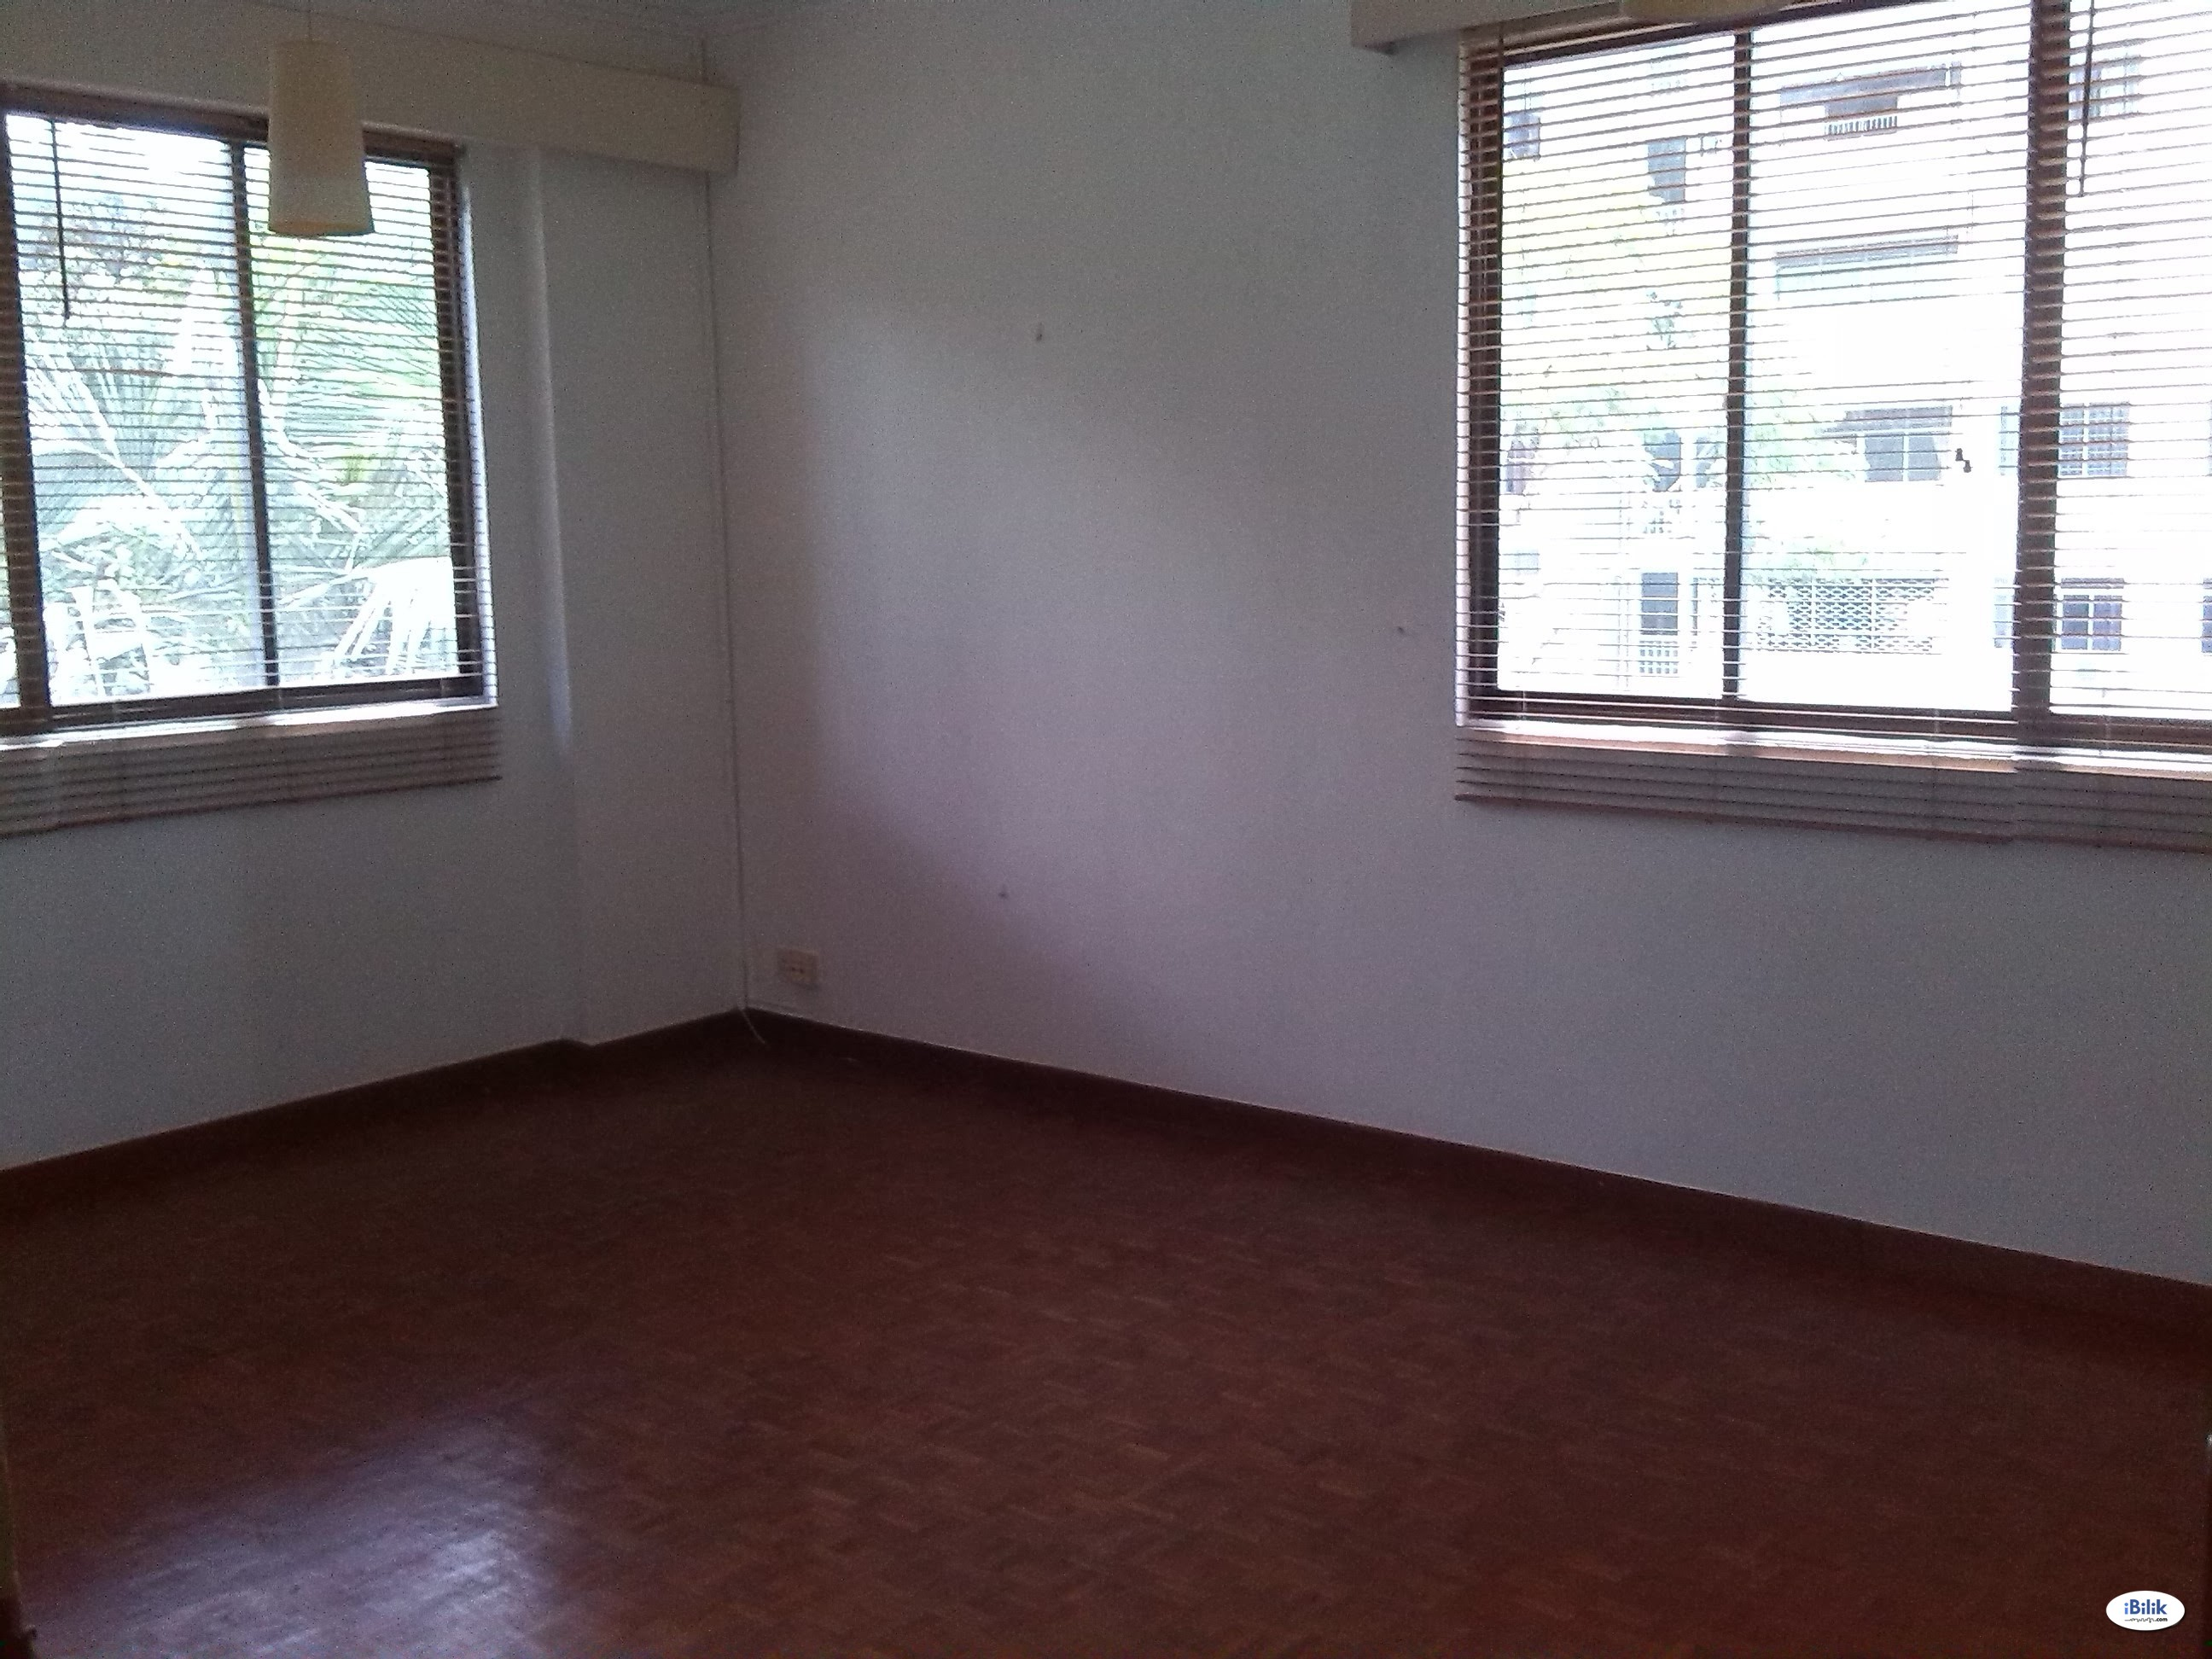 Orchard Road condo master bedroom for ladies